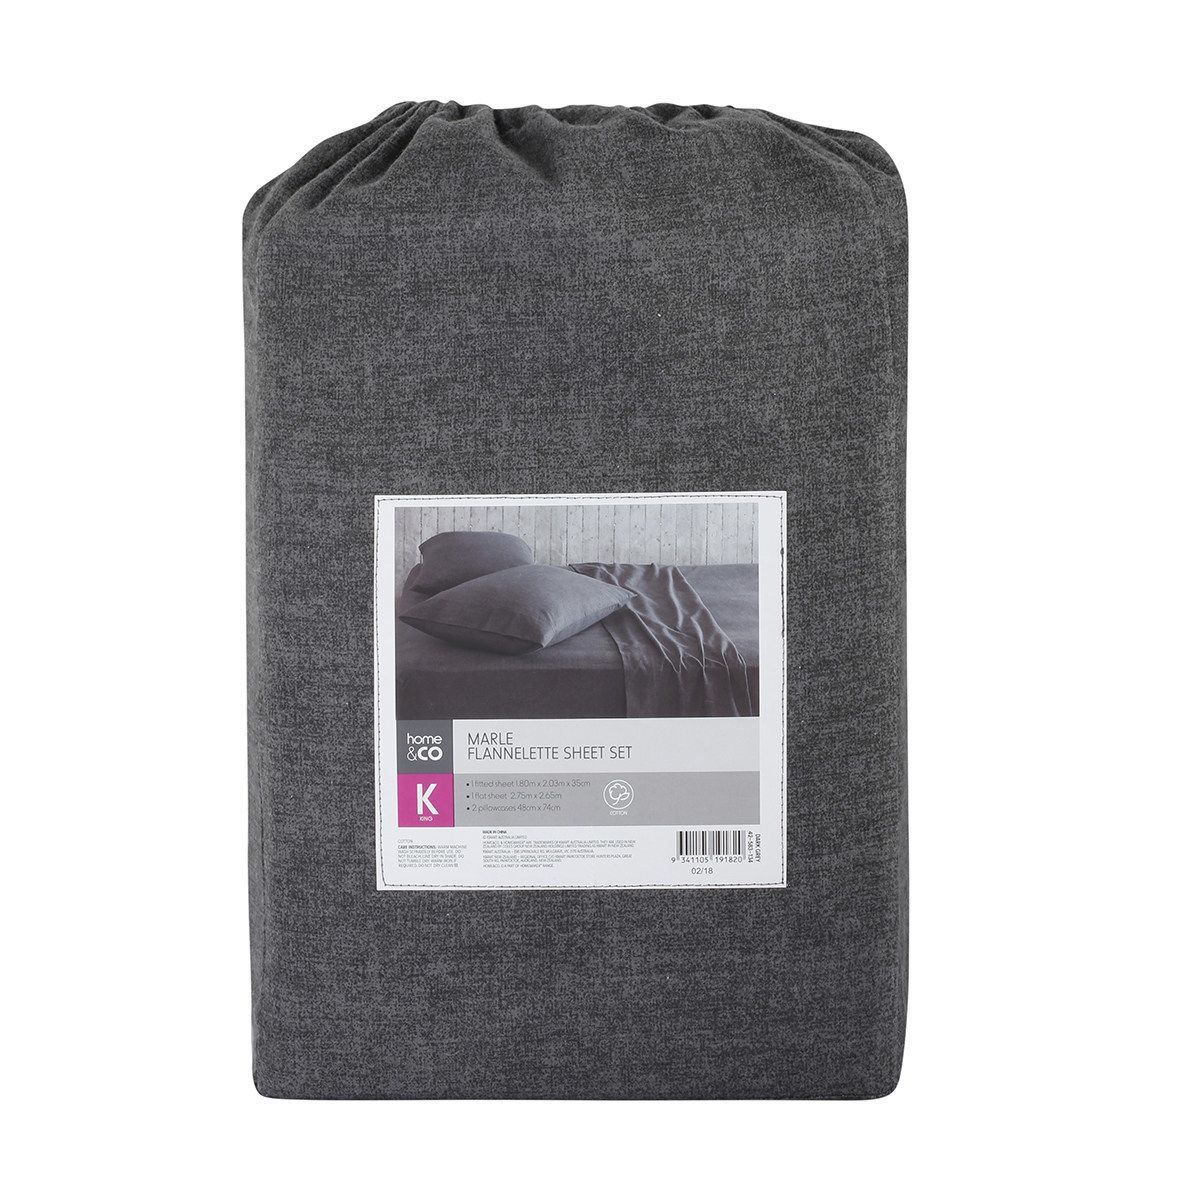 marle flannelette sheet set queen bed dark grey flannelette